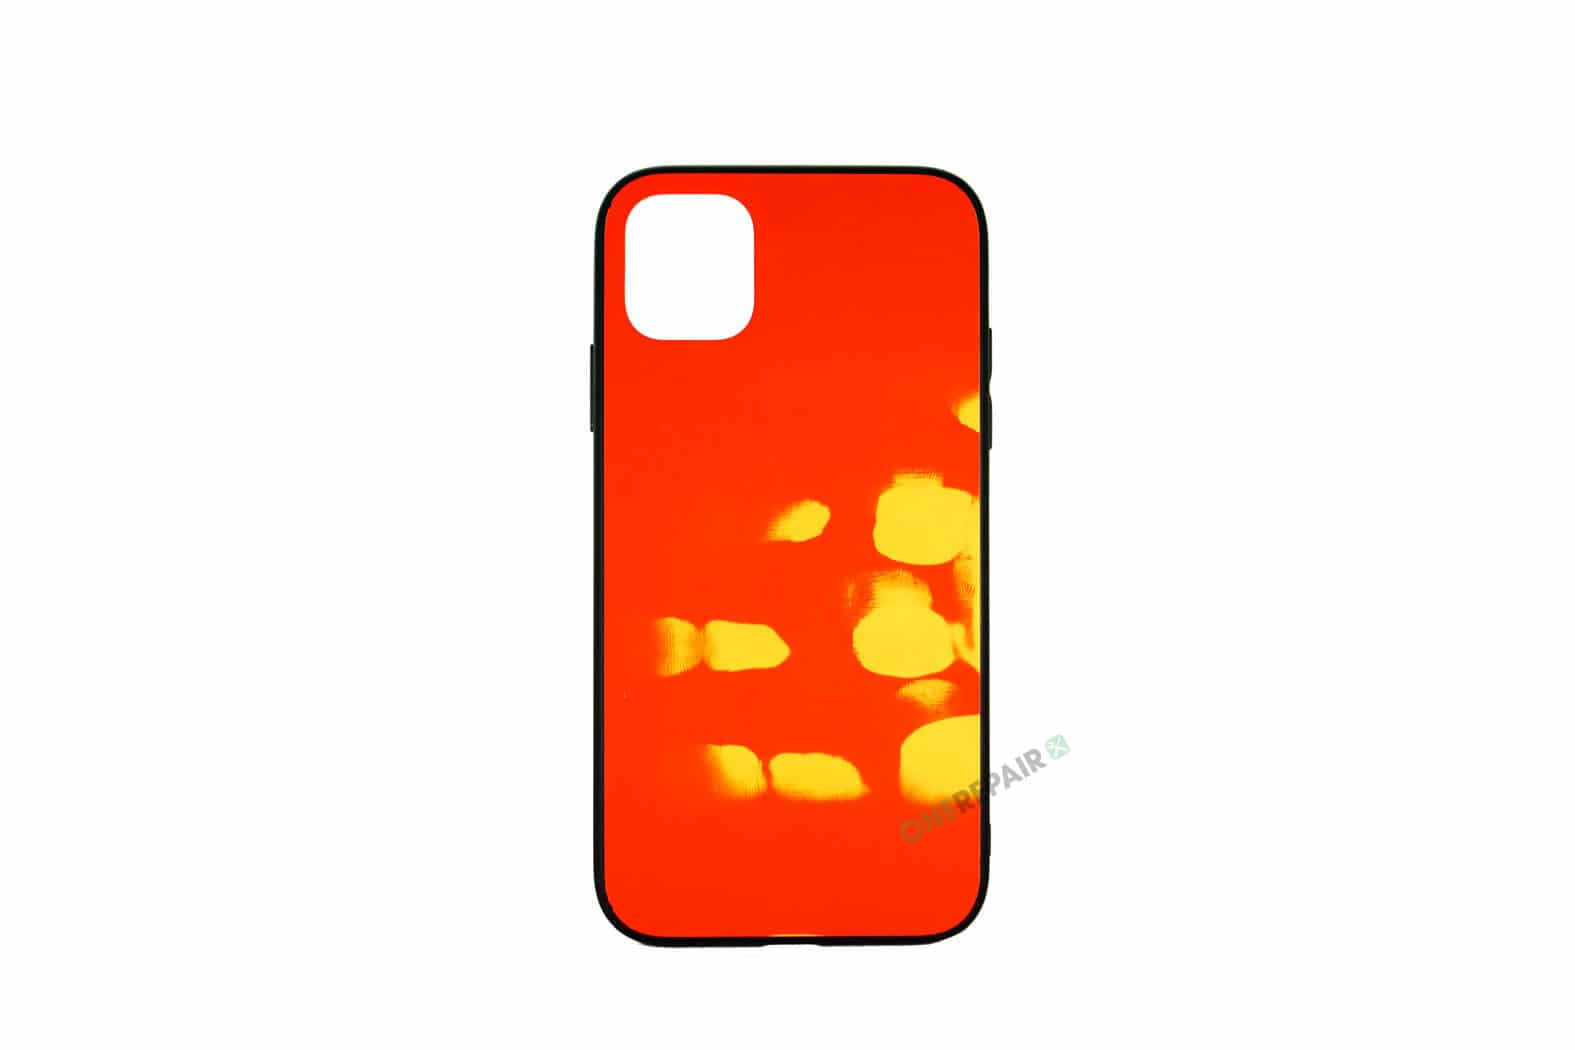 353706-002_iPhone_11_Varmecover_Cover_Roed-gul_OneRepair_00001